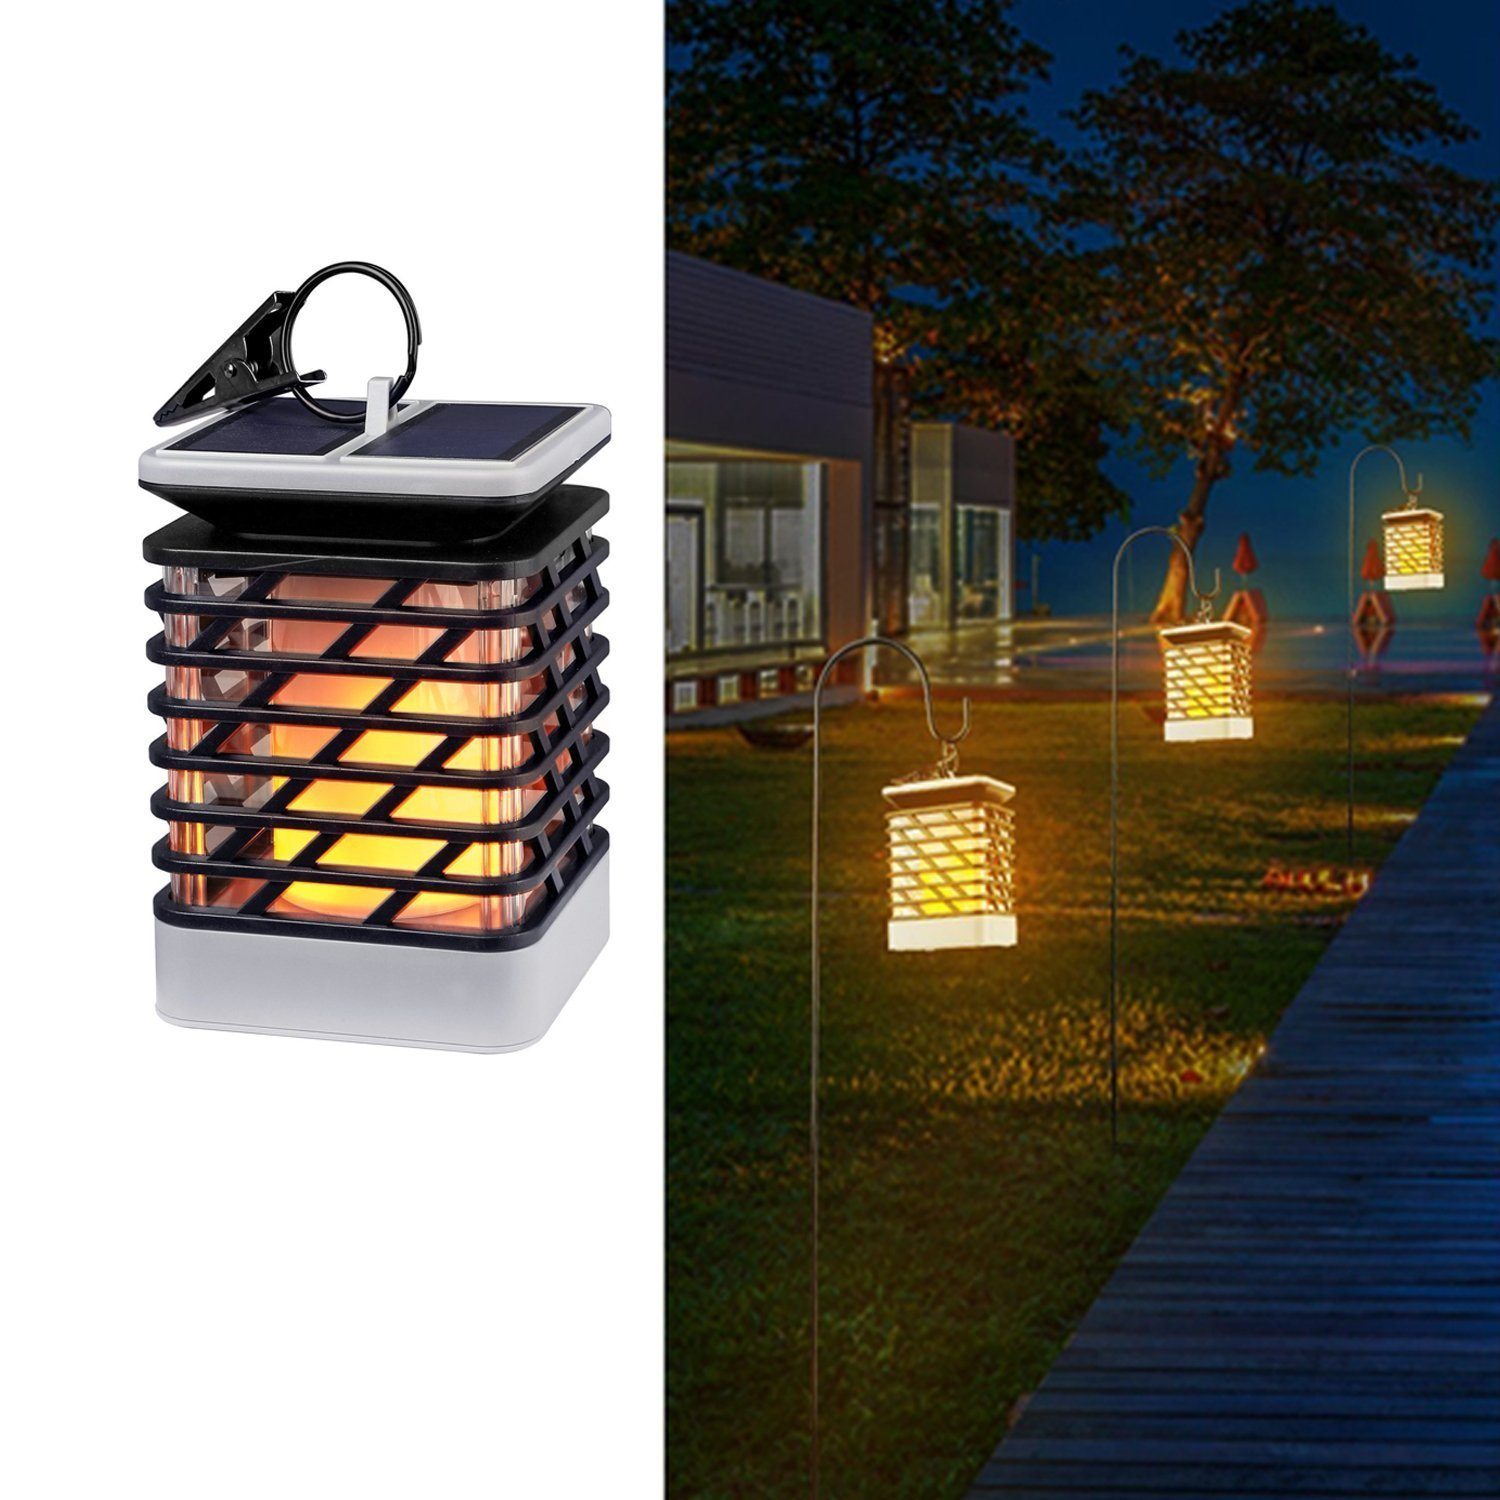 Hot sale Solar Lights Outdoor Espier LED Flickering Flame Torch Lights Solar Powered Lantern Hanging Decorative Atmosphere Lam